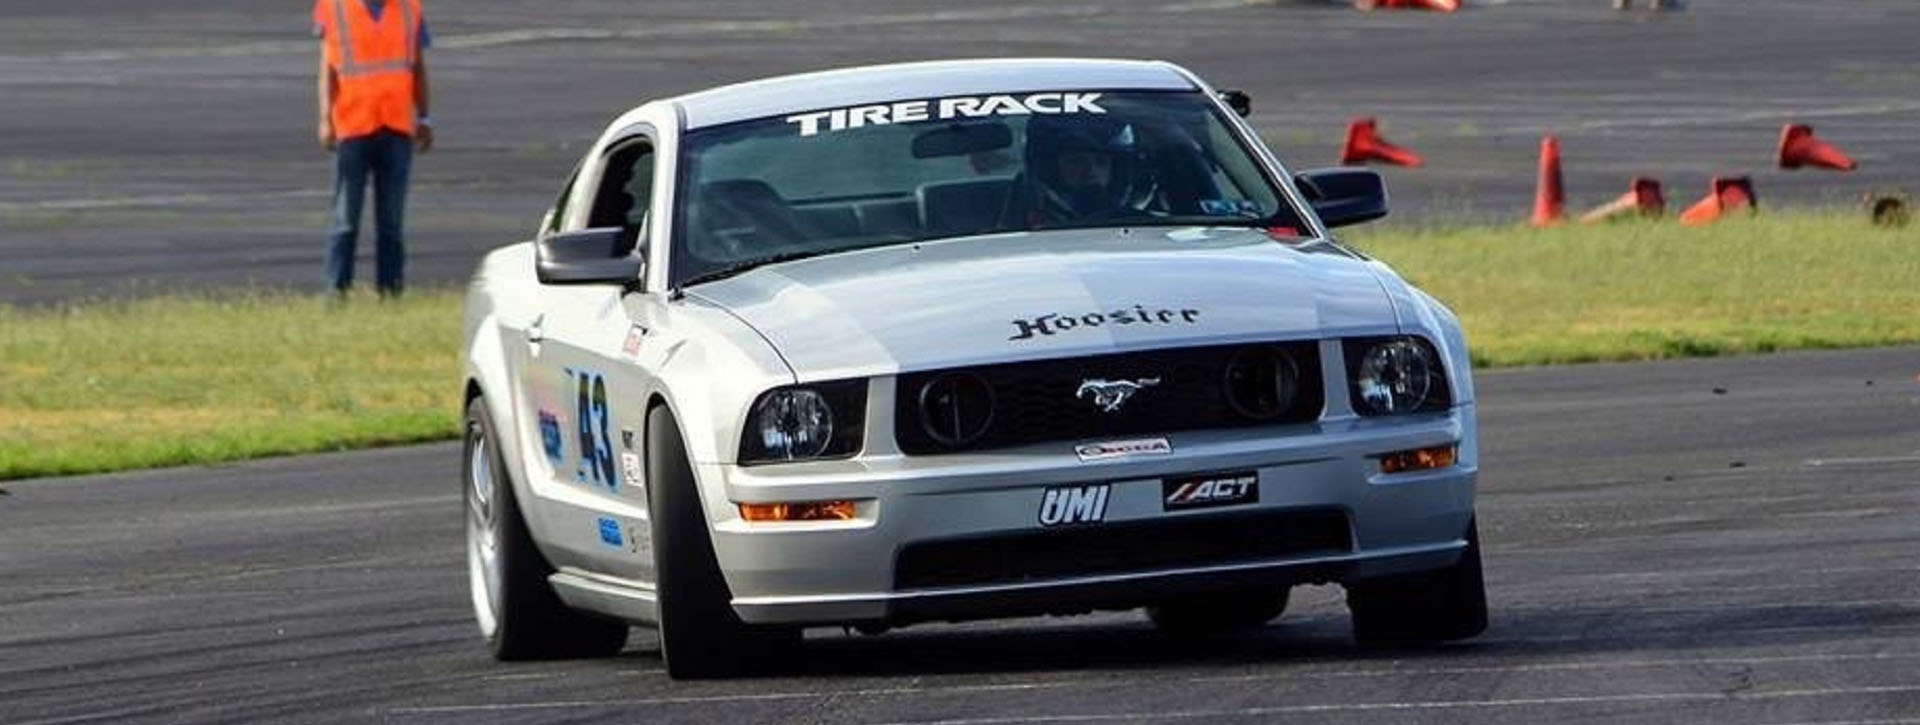 <p>Name: Jason Felty From: Shermansdale, PA Runs: SCCA AutoCross and Motocross Drives: 2006 Mustang GT in CP (thanks to the Latshaws), 2002 Lexus IS300 in DSP, and coming soon a 2006 Corvette Z06 in SSM Member Since: 2009 If you attended the 2017 Awards Banquet you are sure to have seen […]</p>